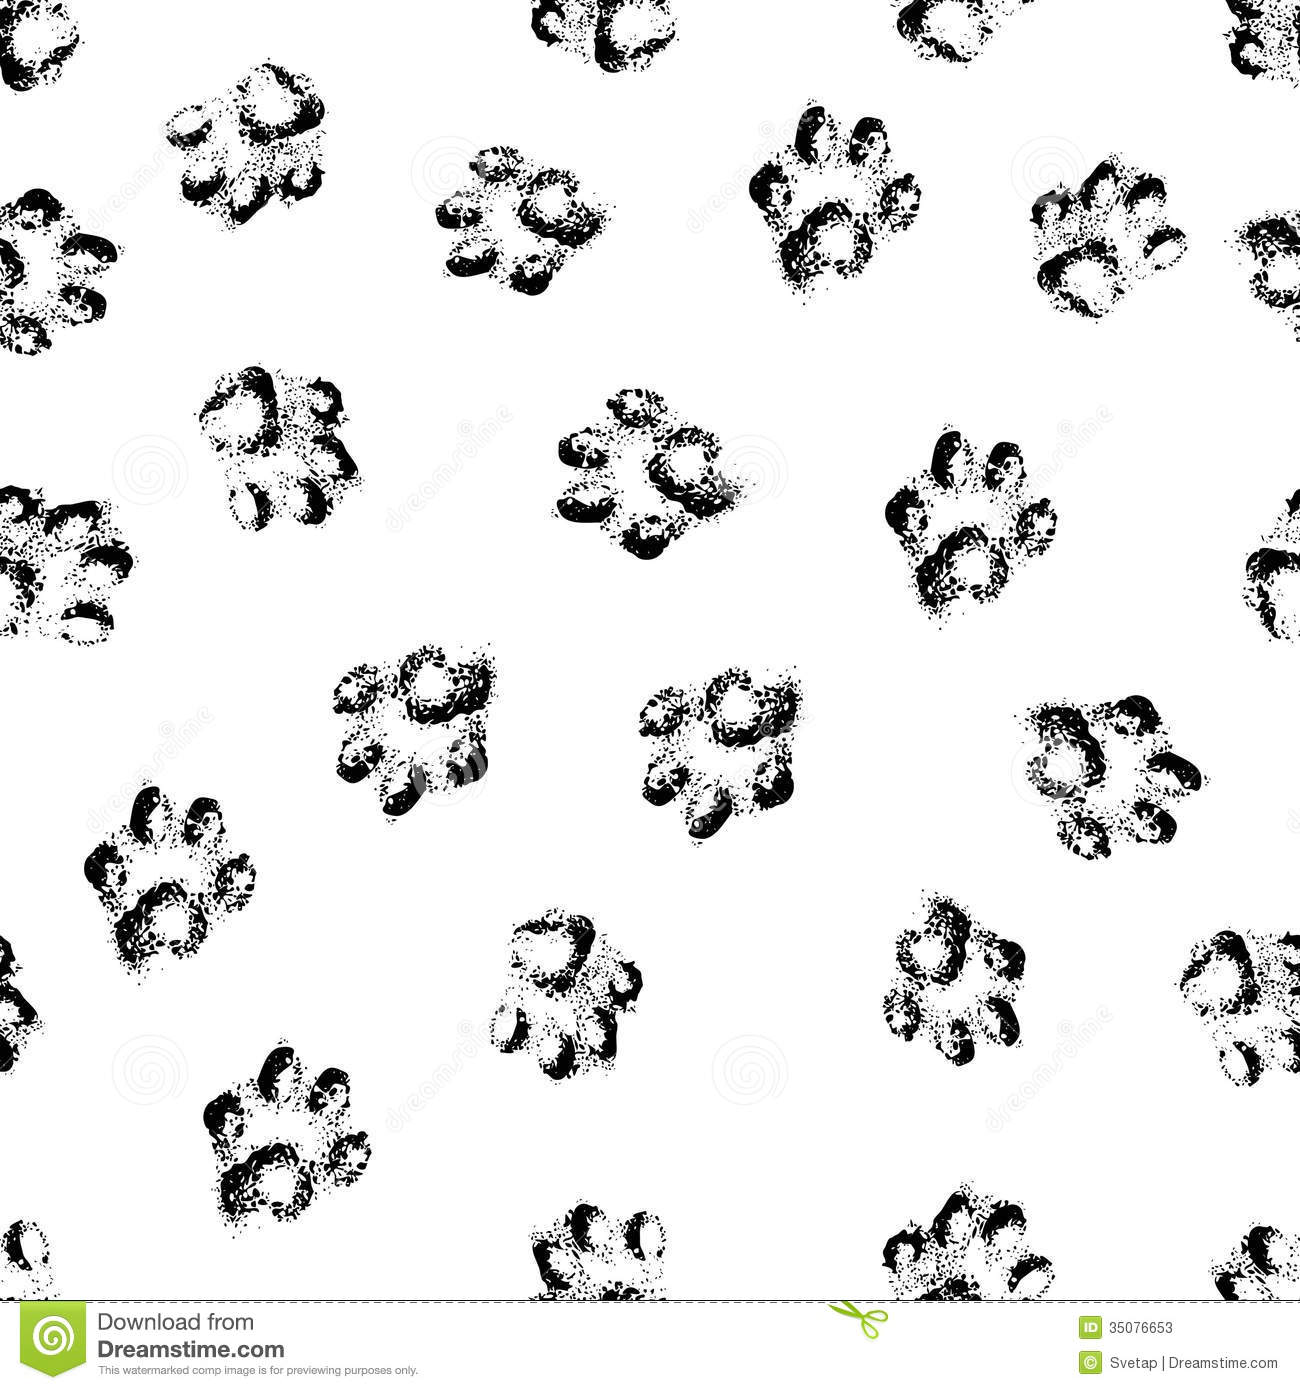 Paw Grunge Footprint Of Dog Or Cat Seamless Pattern